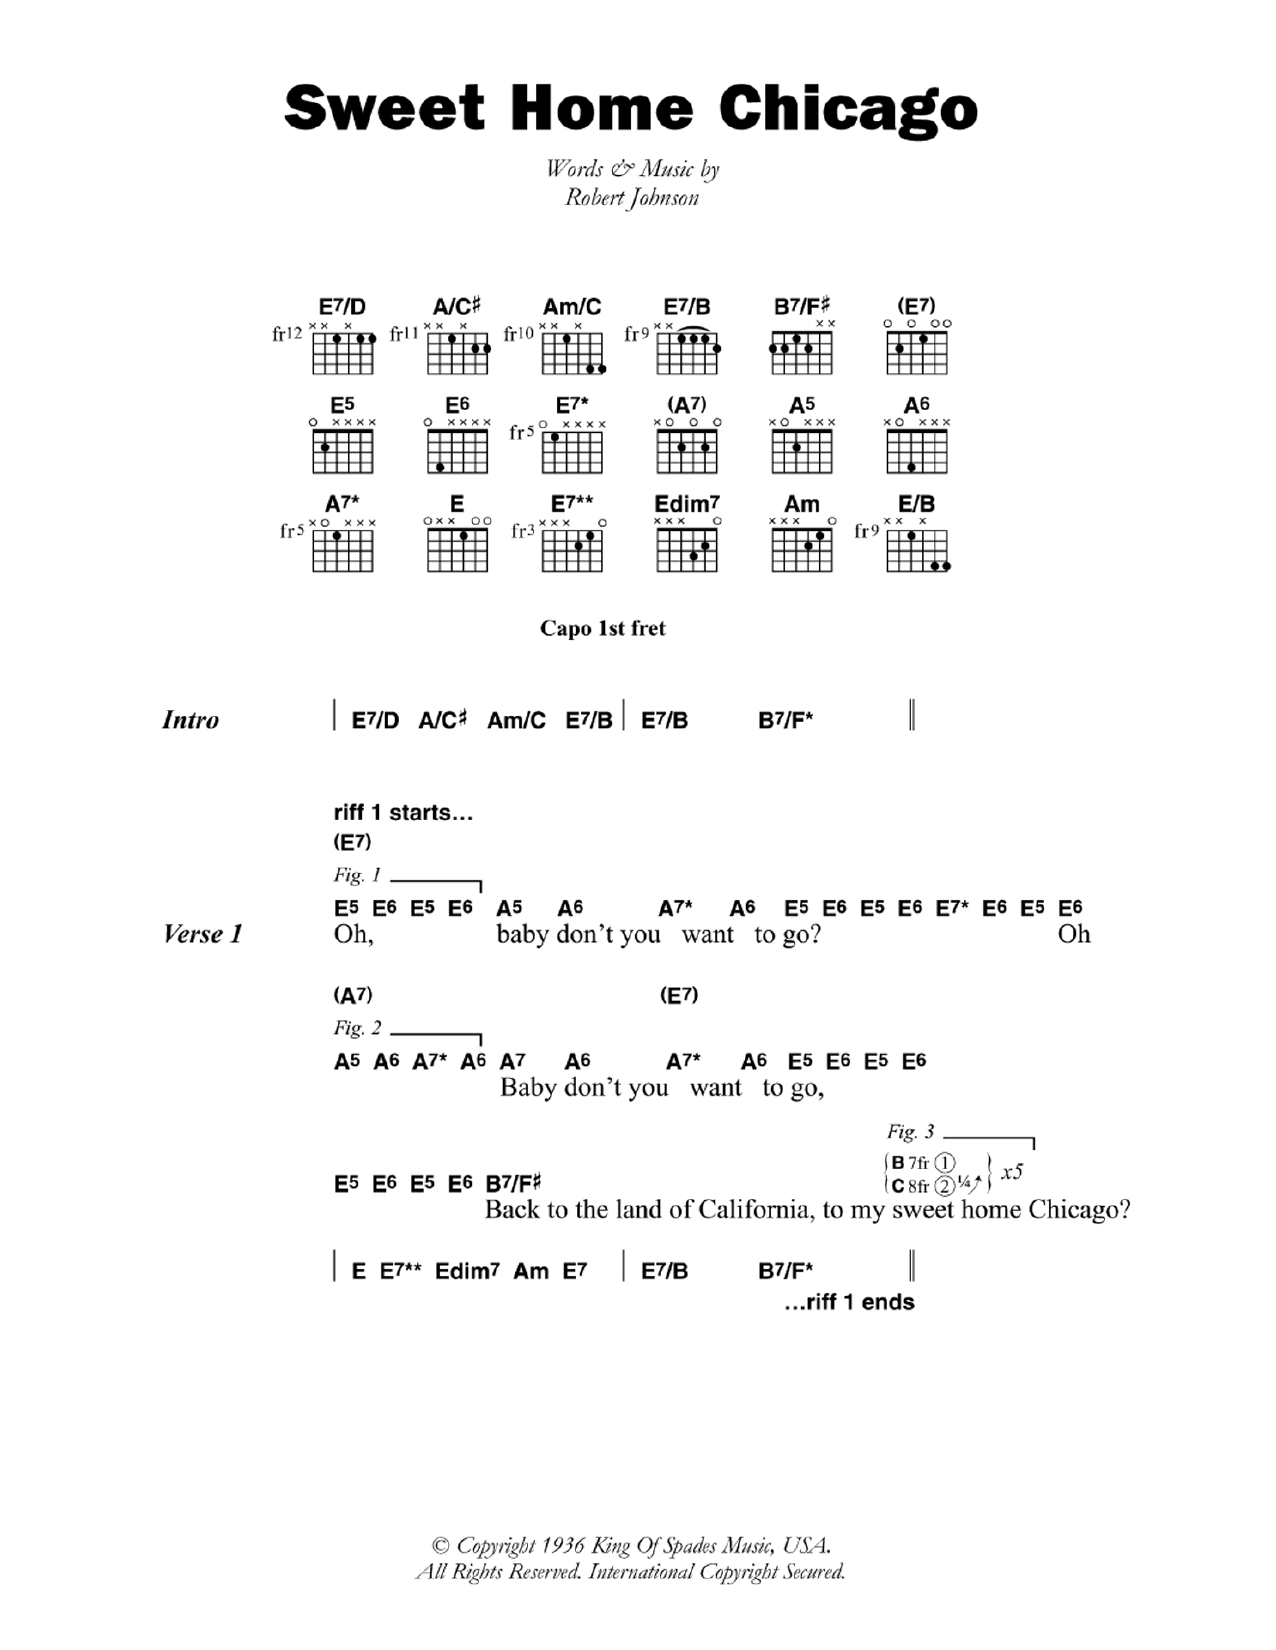 Sheet music digital files to print licensed robert johnson sheet music digital by merriam music hexwebz Image collections